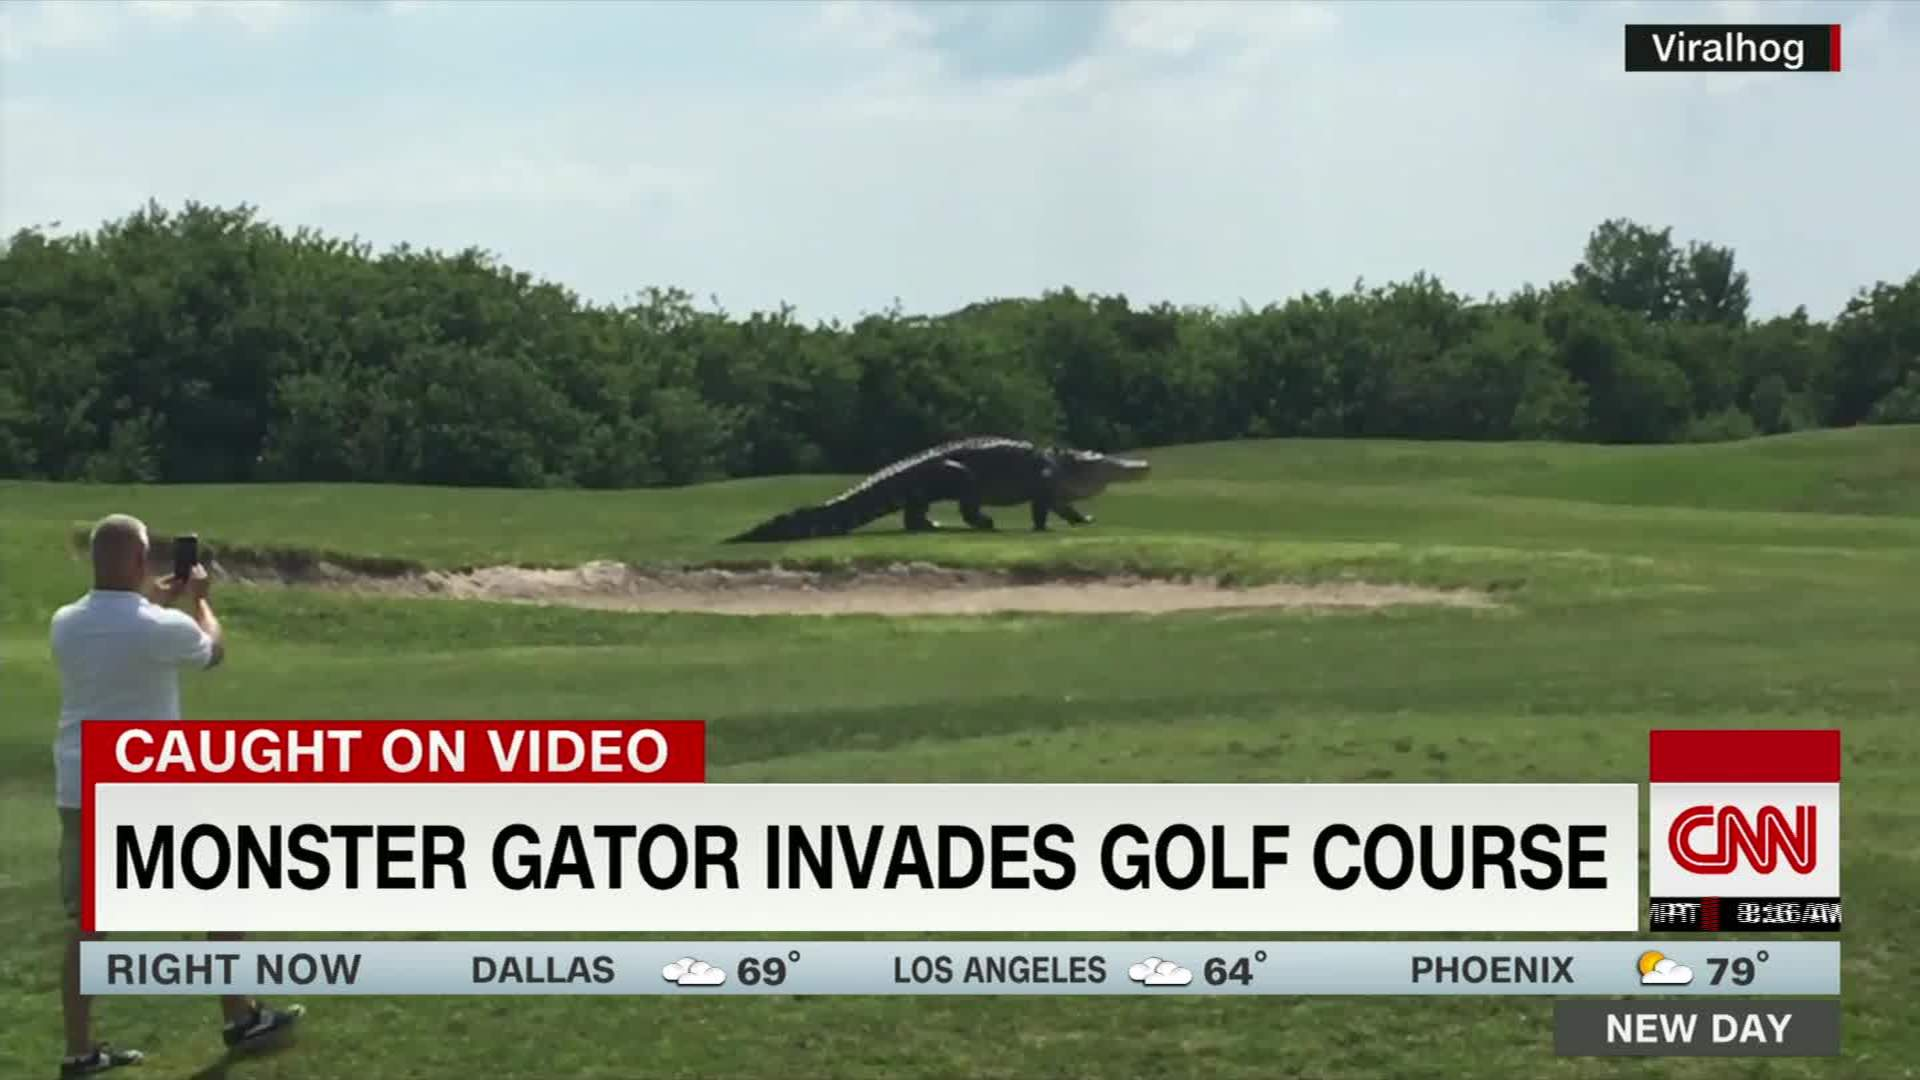 Gigantic Gator Spotted On Golf Course Cnn Video